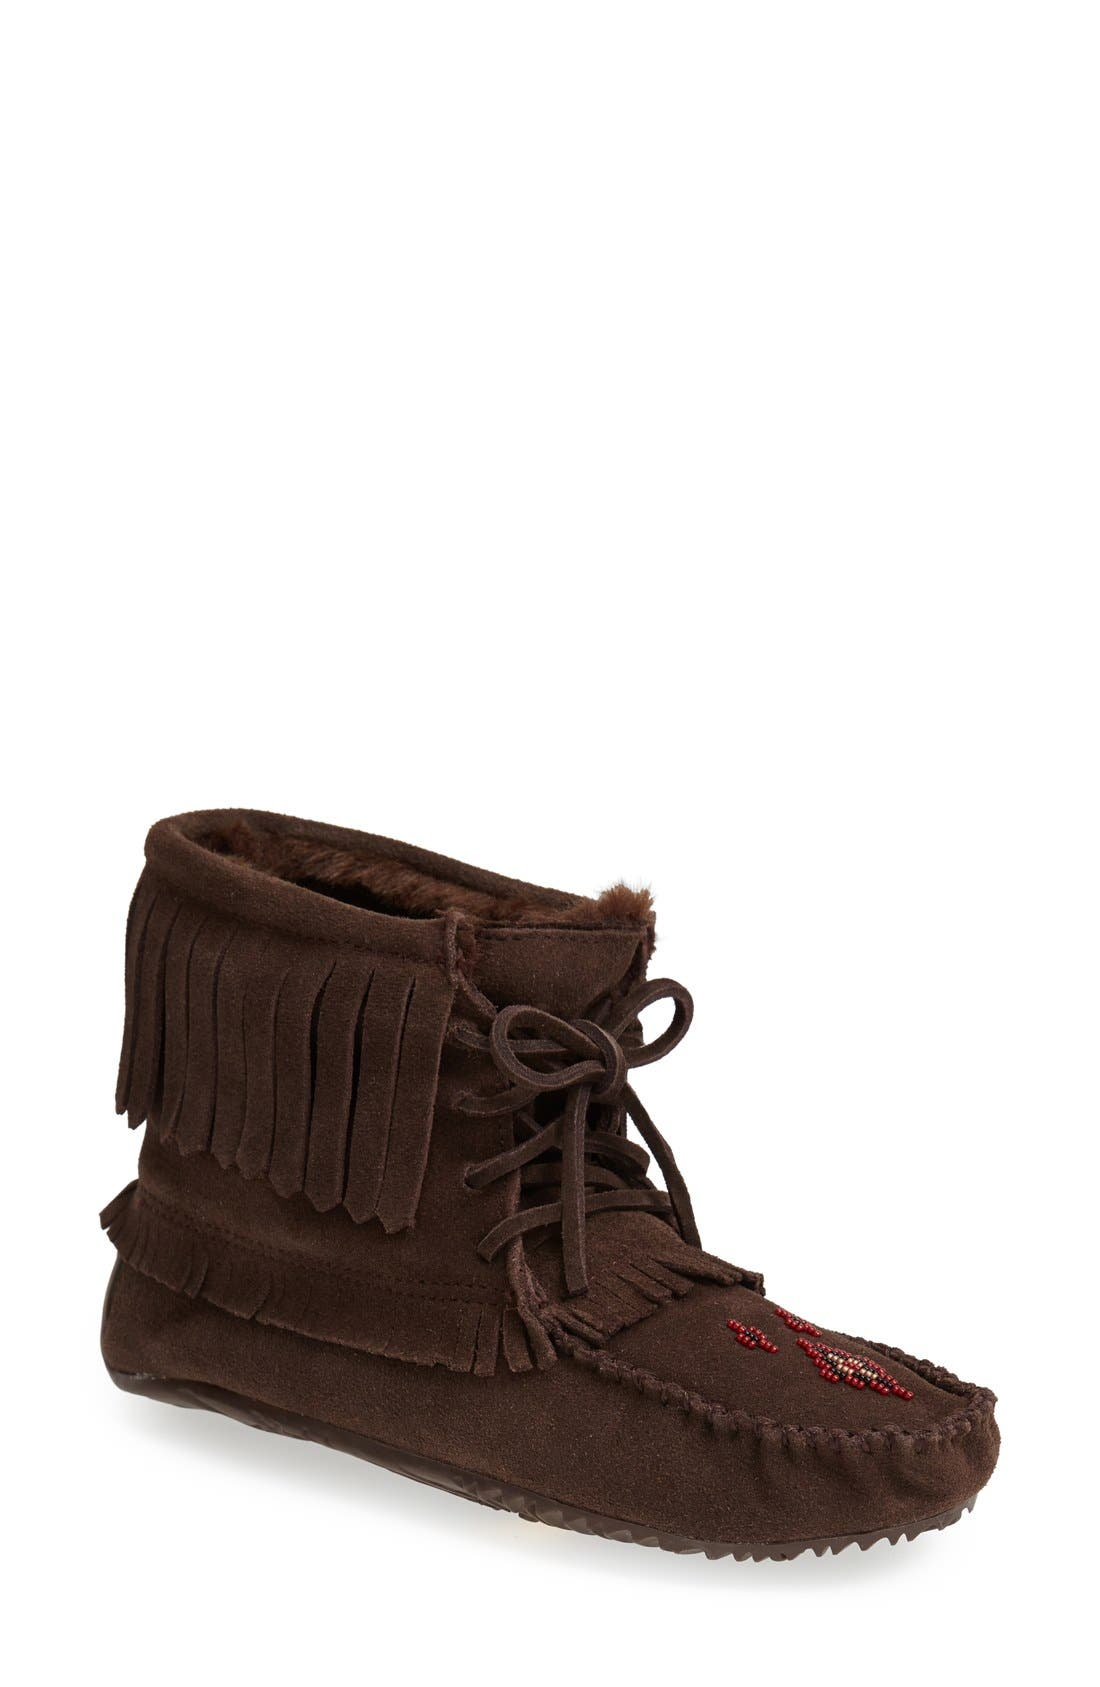 'Harvester' Moccasin,                         Main,                         color, Chocolate